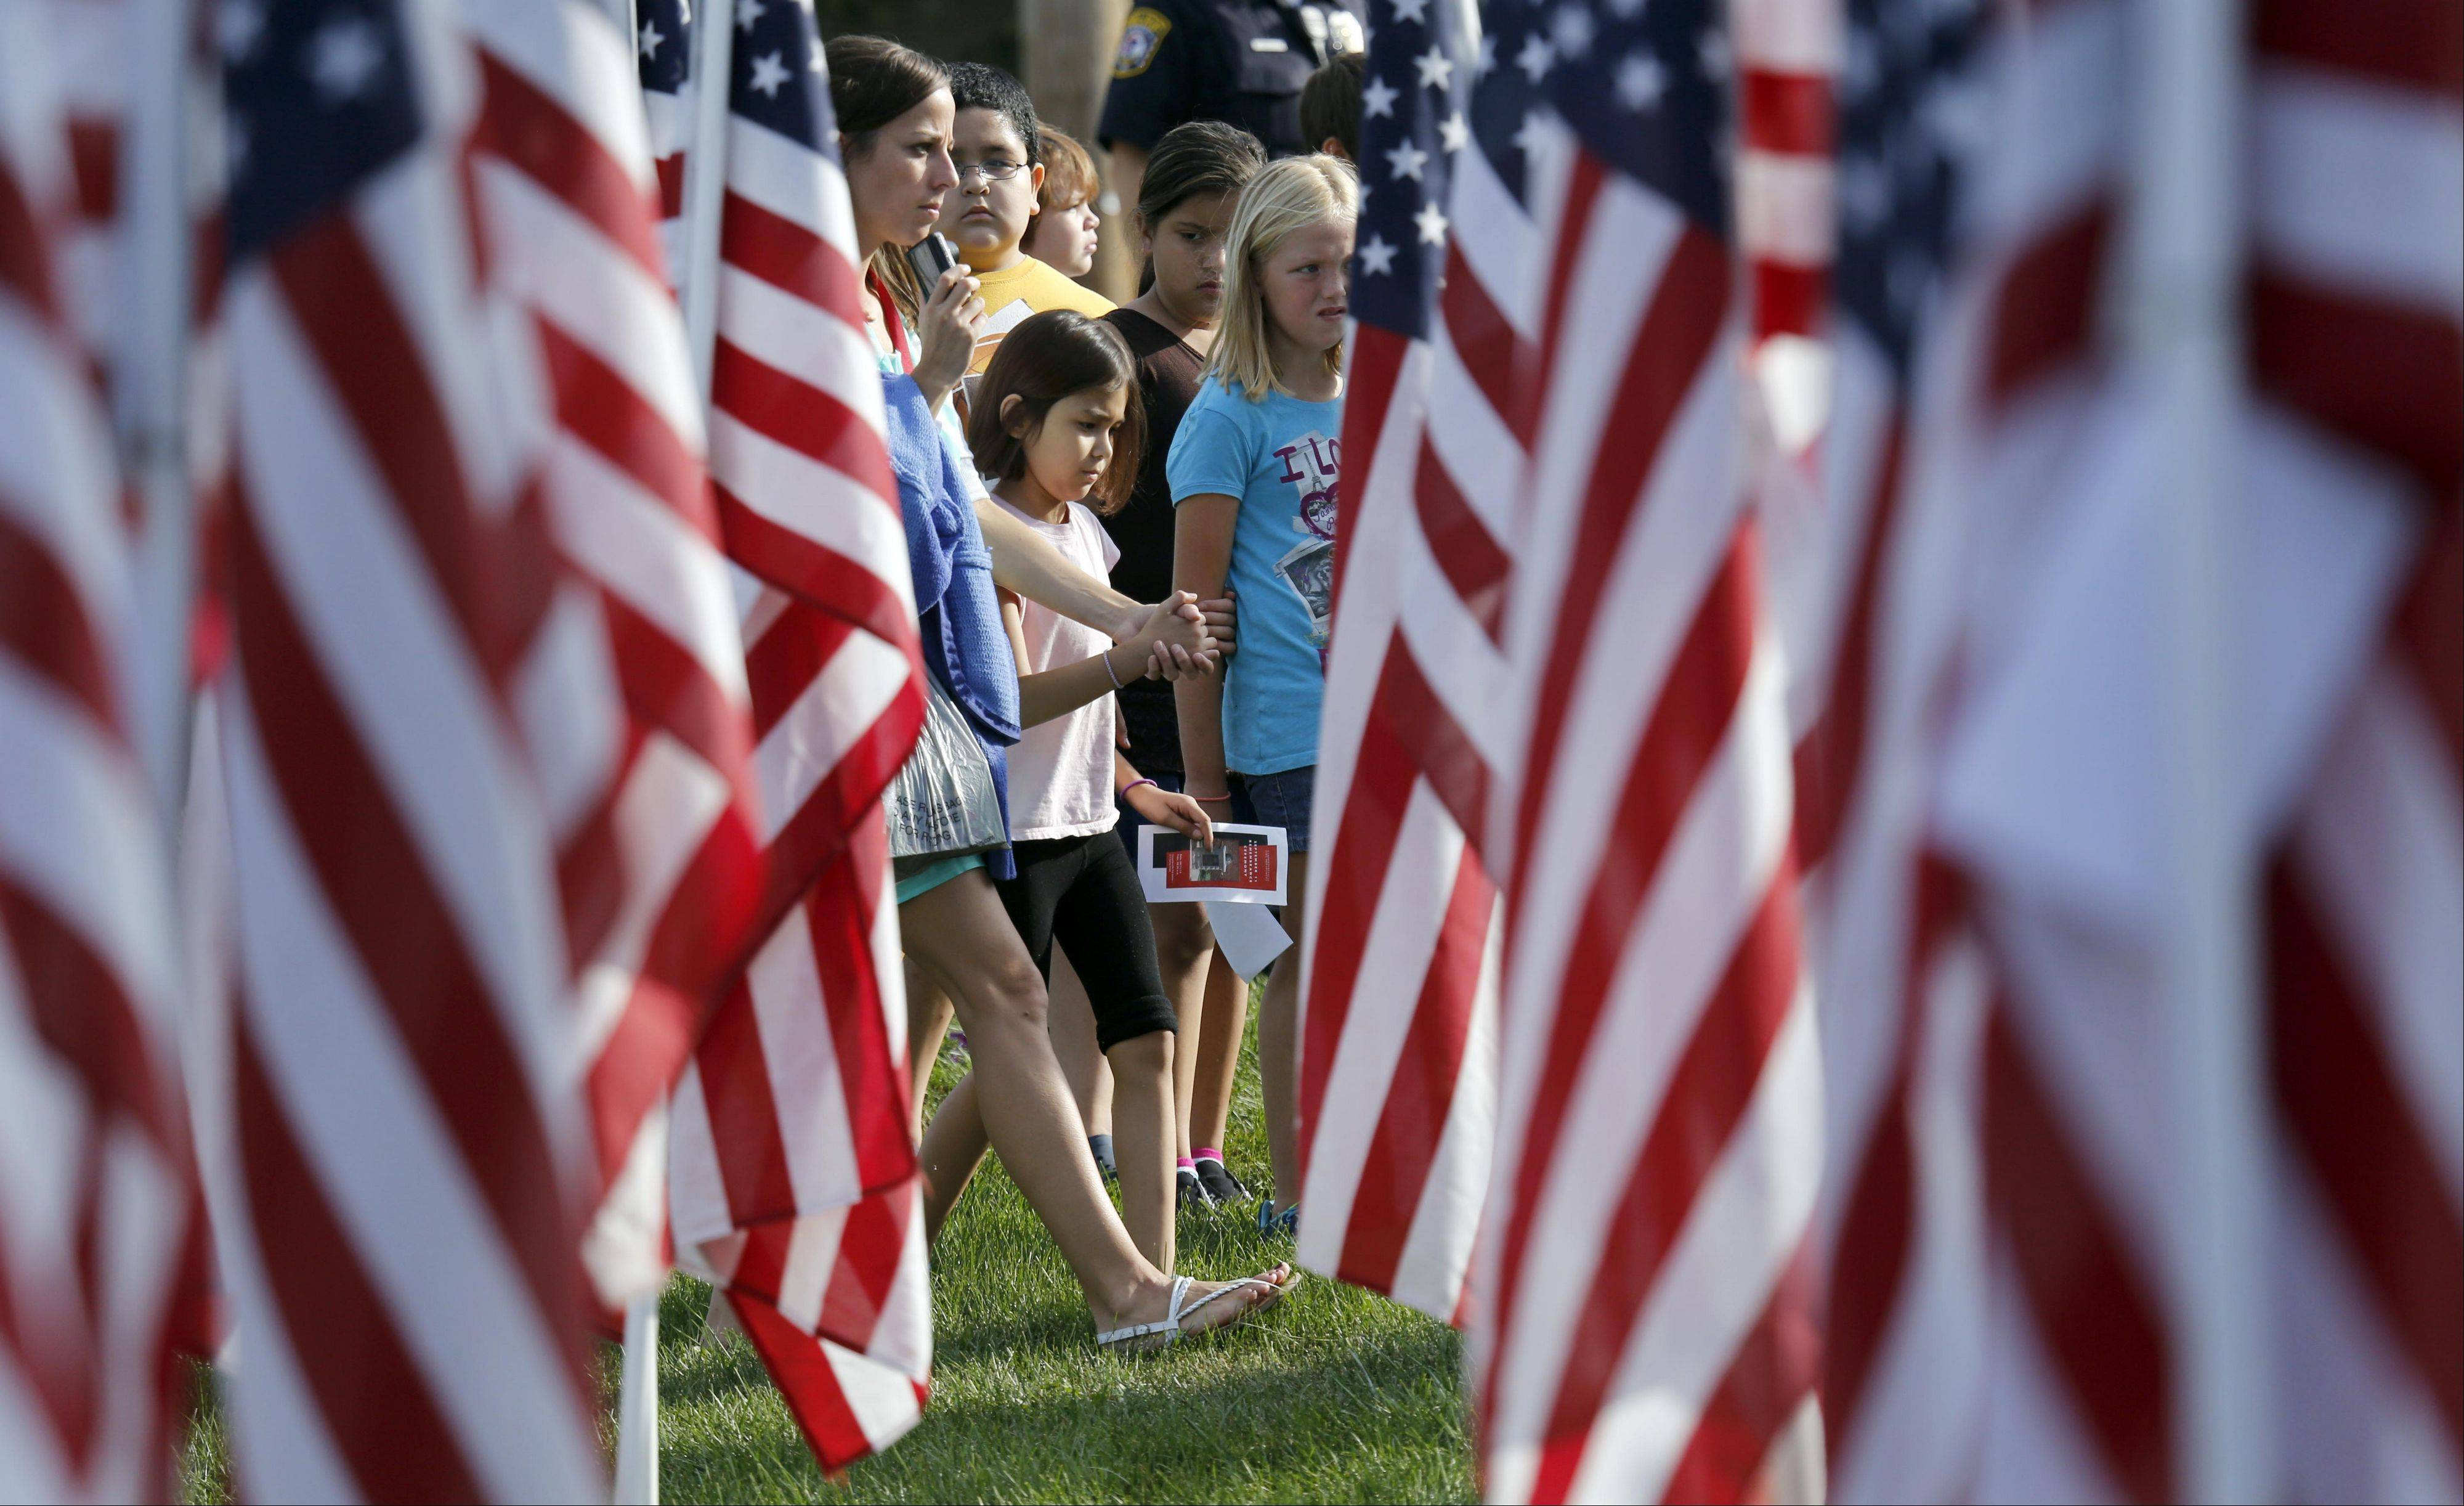 Students from Parkview Elementary School who attended the Sept. 11th ceremony Wednesday at Carpentersville Fire Station 1 file past some of the more than 400 flags representing the first responders who lost their lives 12 years ago.